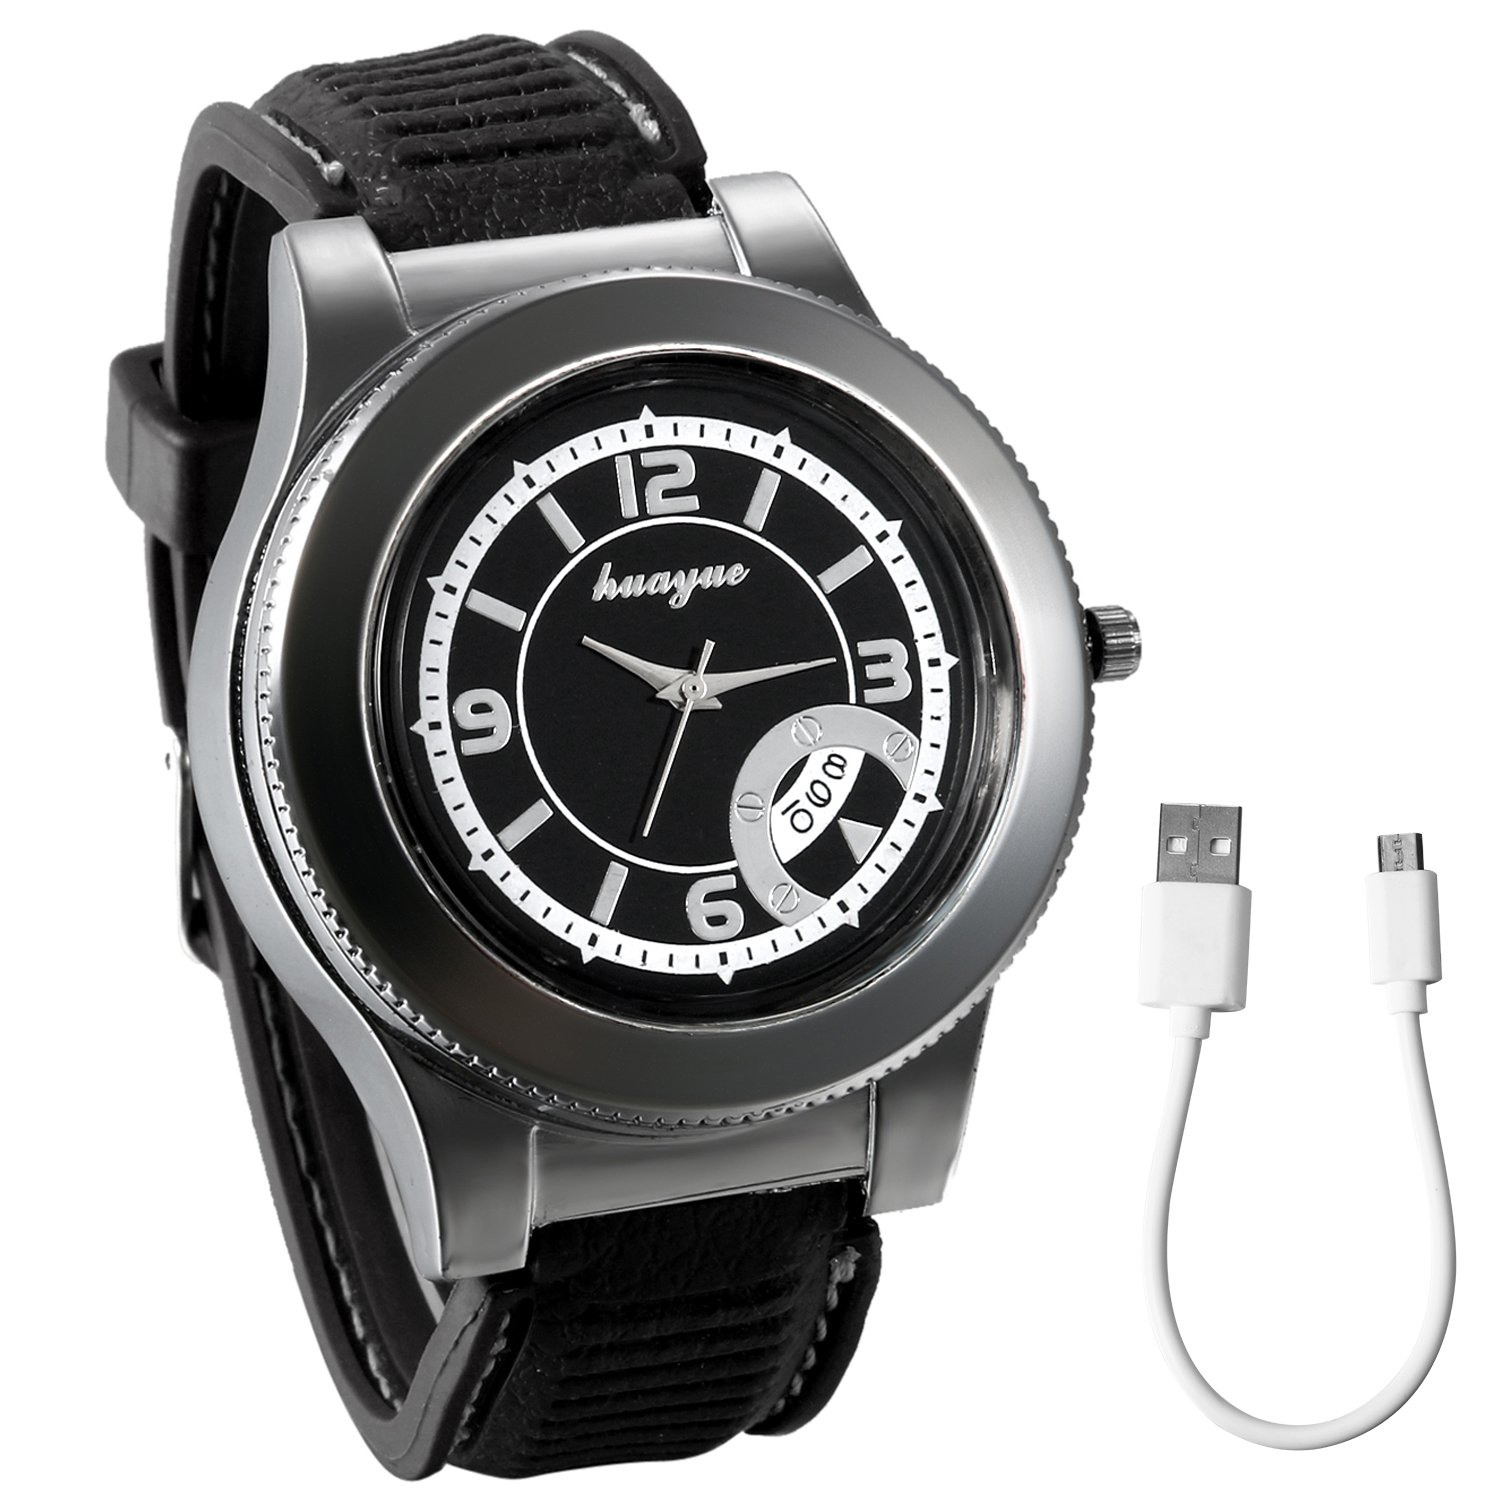 JewelryWe Mens Novelty Cigarette Lighter Watch Windproof USB Charging Quartz Wrist Watch for Fathers Day Gifts